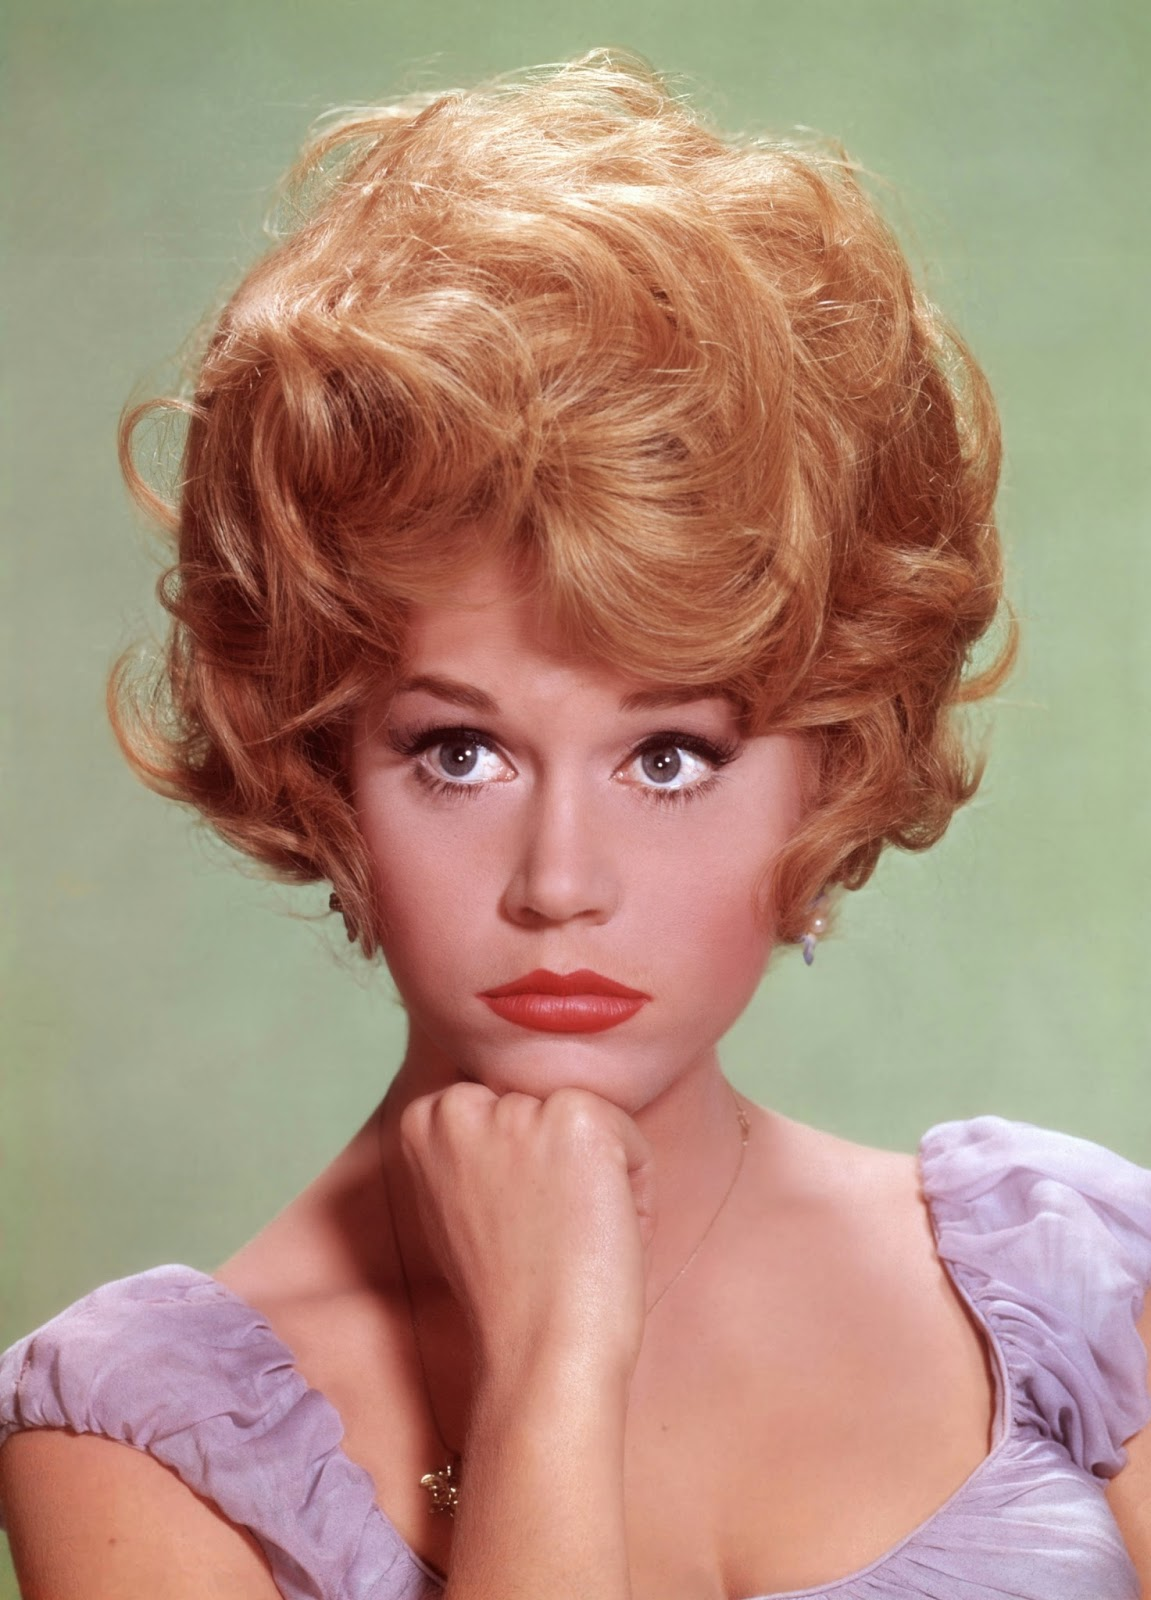 the career of jane fonda an actress and antiwar activist Jane seymour fonda (born december 21, 1937) is an american actress, writer,  political activist  jane fonda did an extraordinary job with her part  and  pride for her anti-war activism: there are hundreds of american delegations that  had.